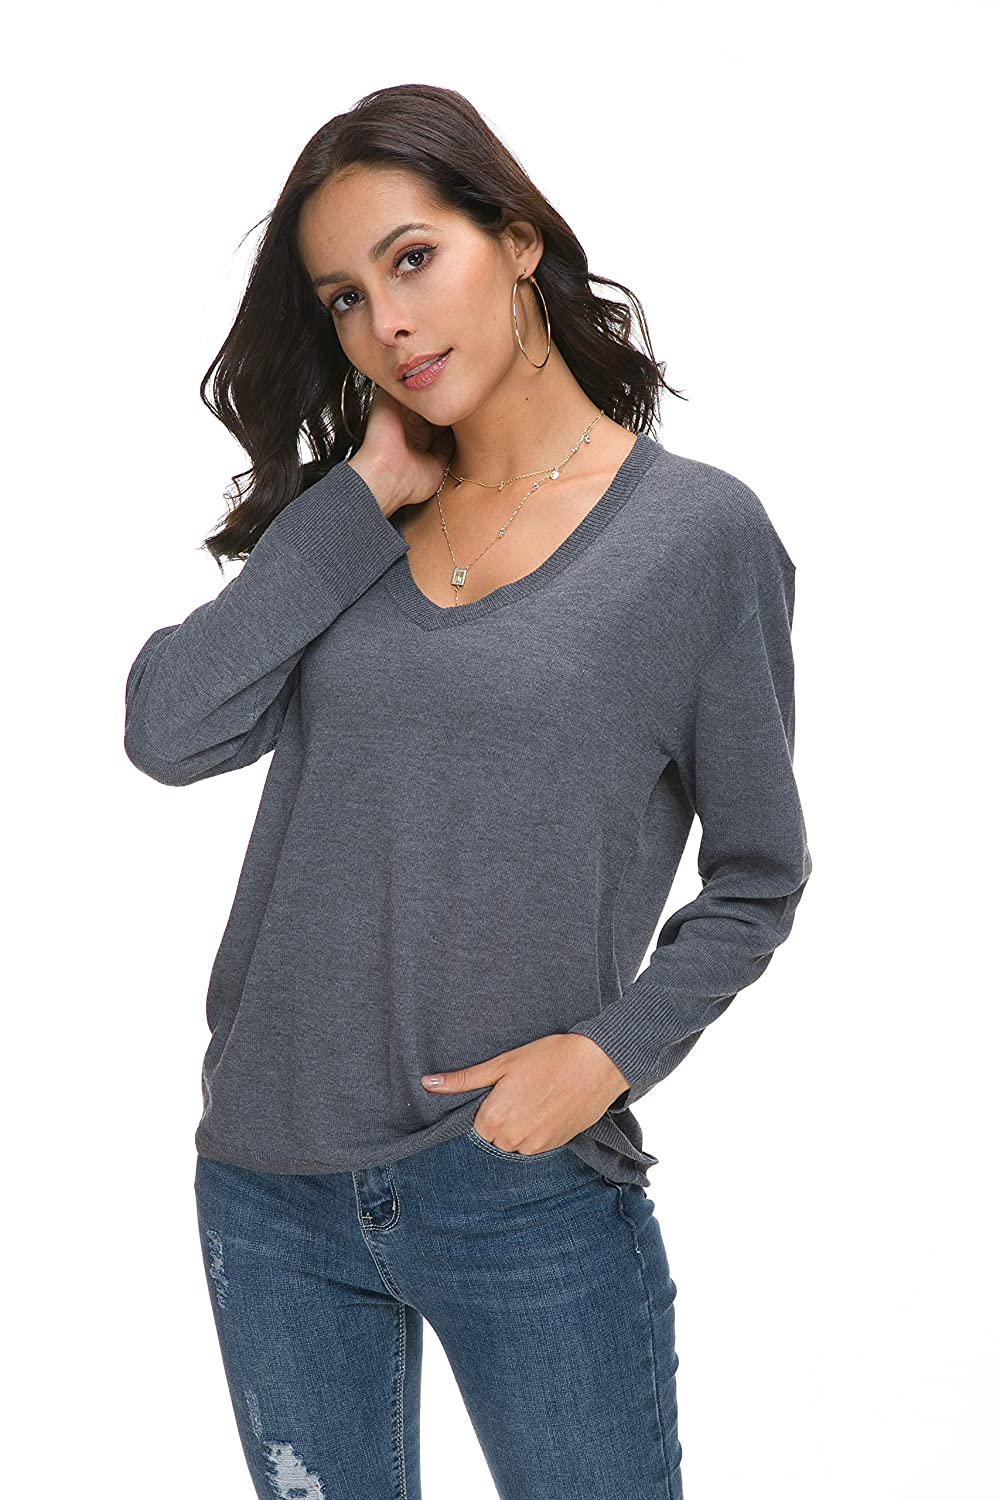 Sechico Women Loose V-Neck Pullover Sweater Long Sleeve Knitted  Sweatershirt at Amazon Women s Clothing store  3fa21086e